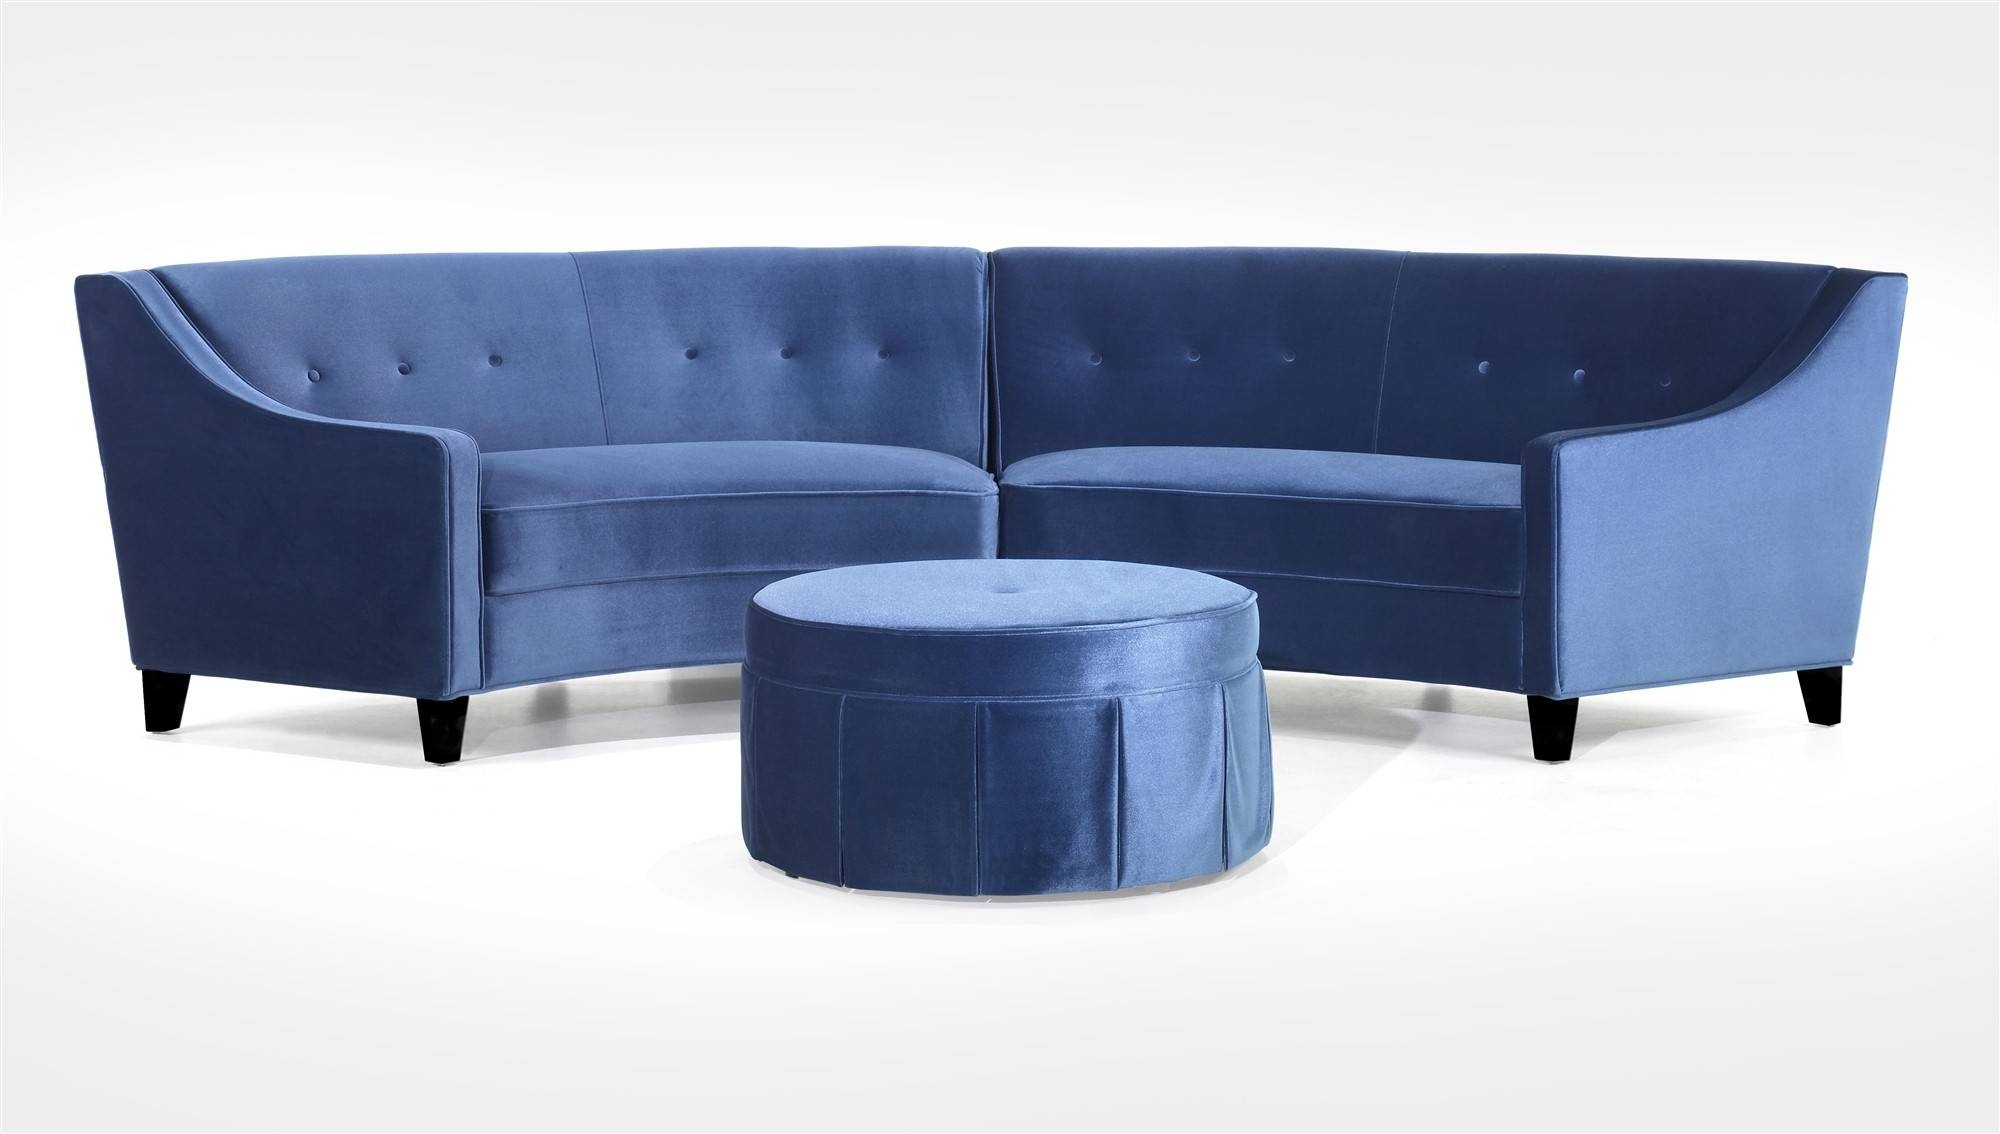 Furniture: Leather Curved Sectional Sofa With Wood Legs For Living intended for Circle Sectional Sofa (Image 9 of 30)